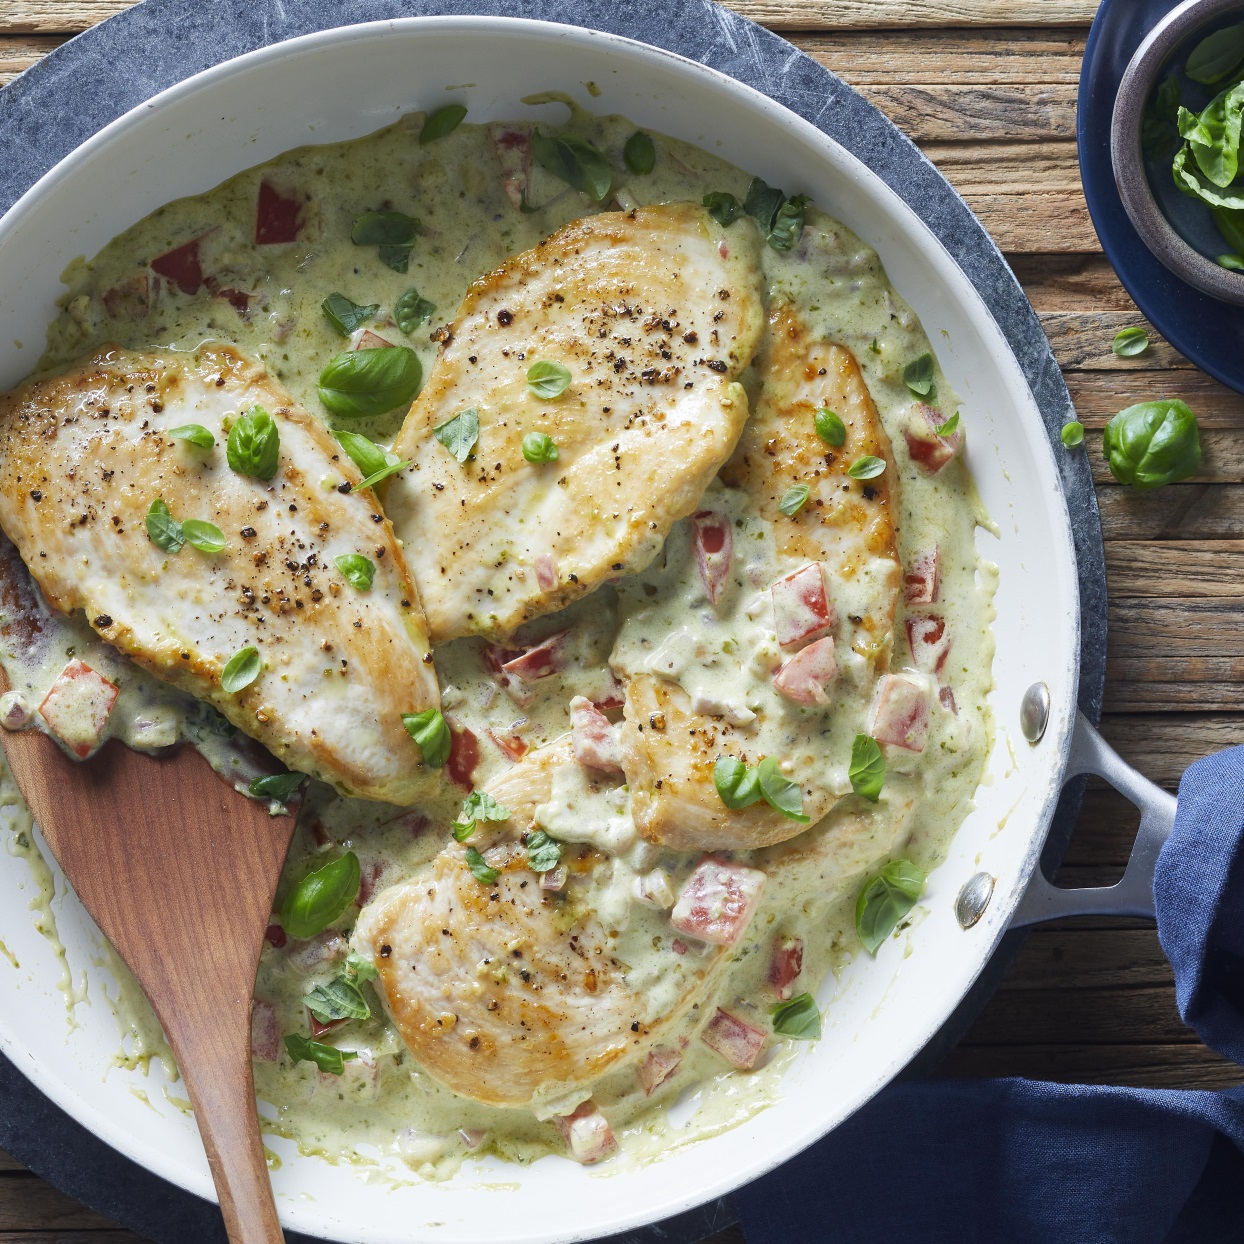 Serve these quick chicken cutlets with creamy pesto sauce over your favorite pasta or zucchini noodles. This easy dinner recipe is sure to become a new family favorite. Source: EatingWell.com, February 2020